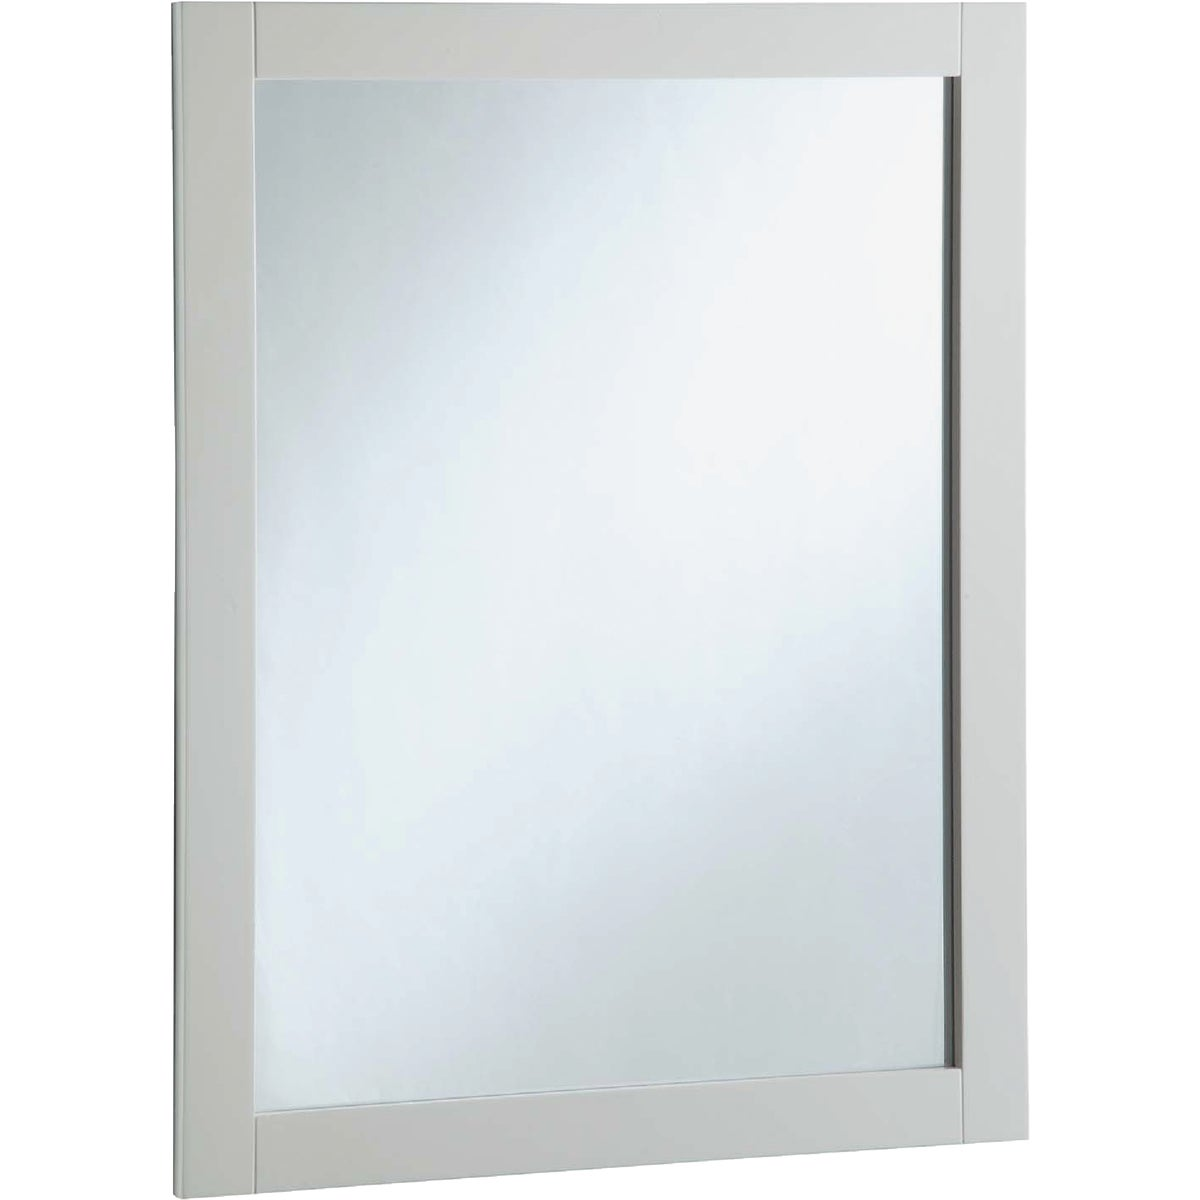 20X28 WHITE WALL MIRROR - EVM2028WW by Zenith Prod Corp